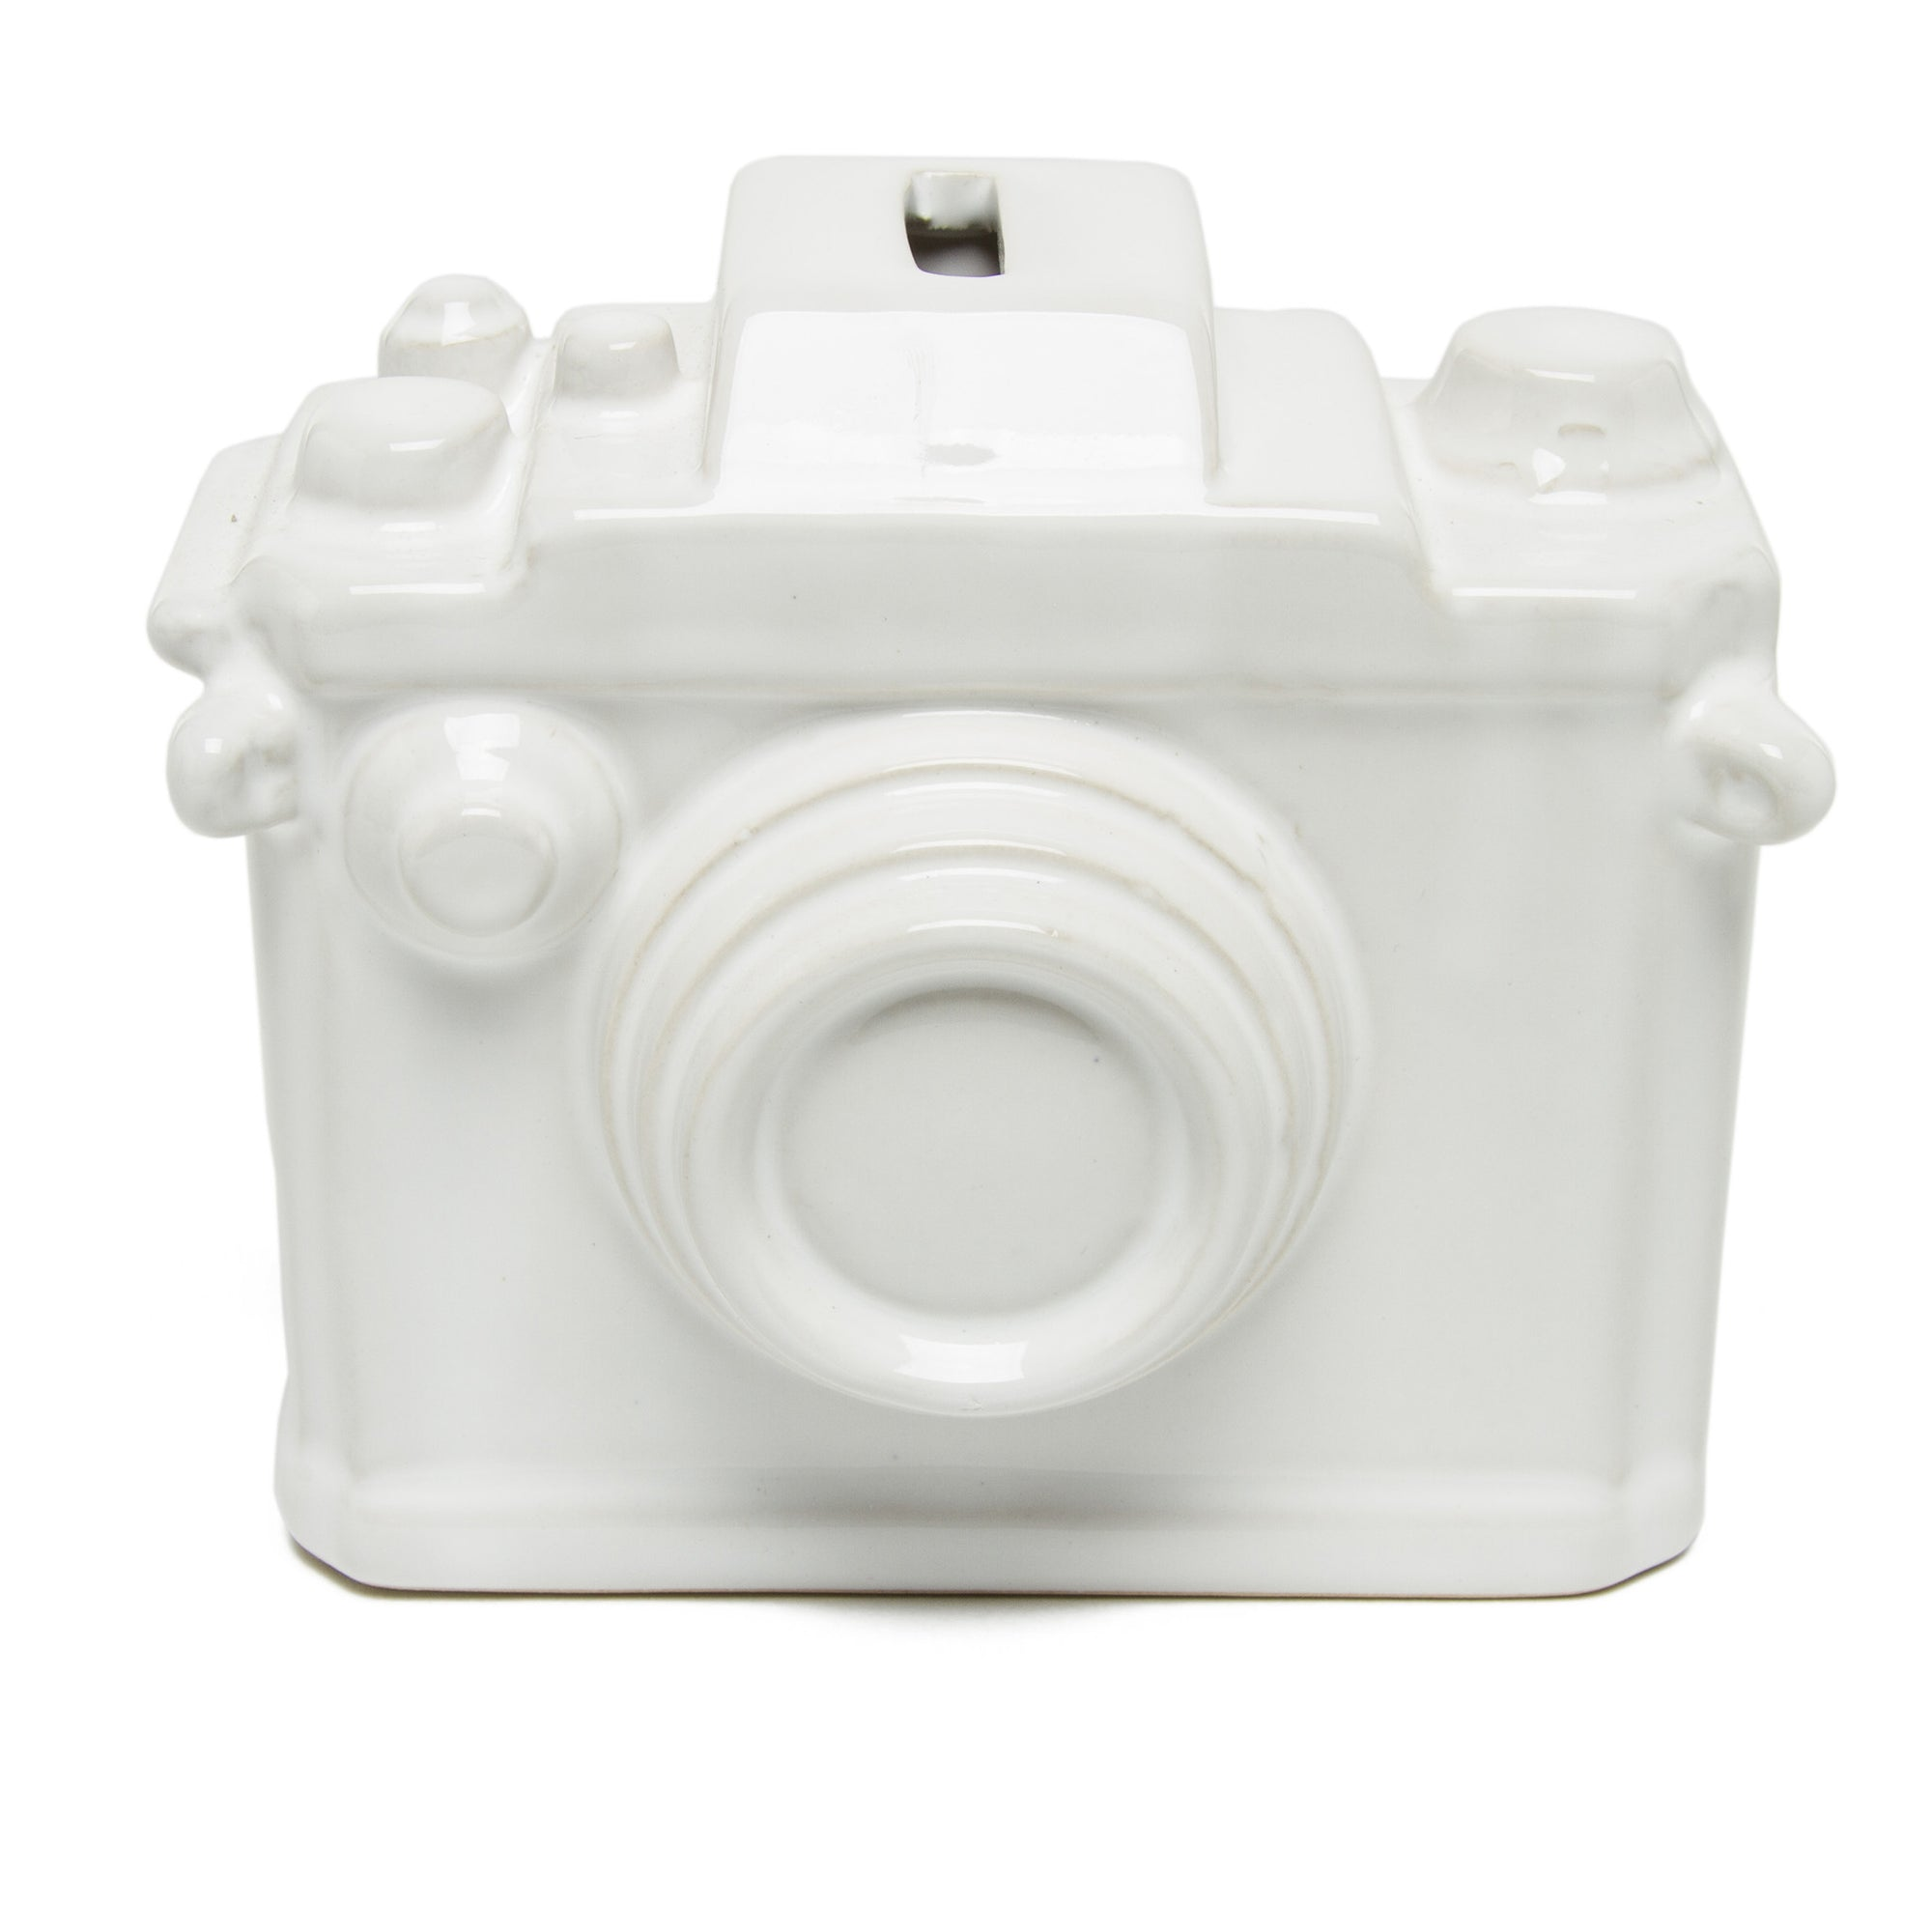 Ceramic Camera Bank - White